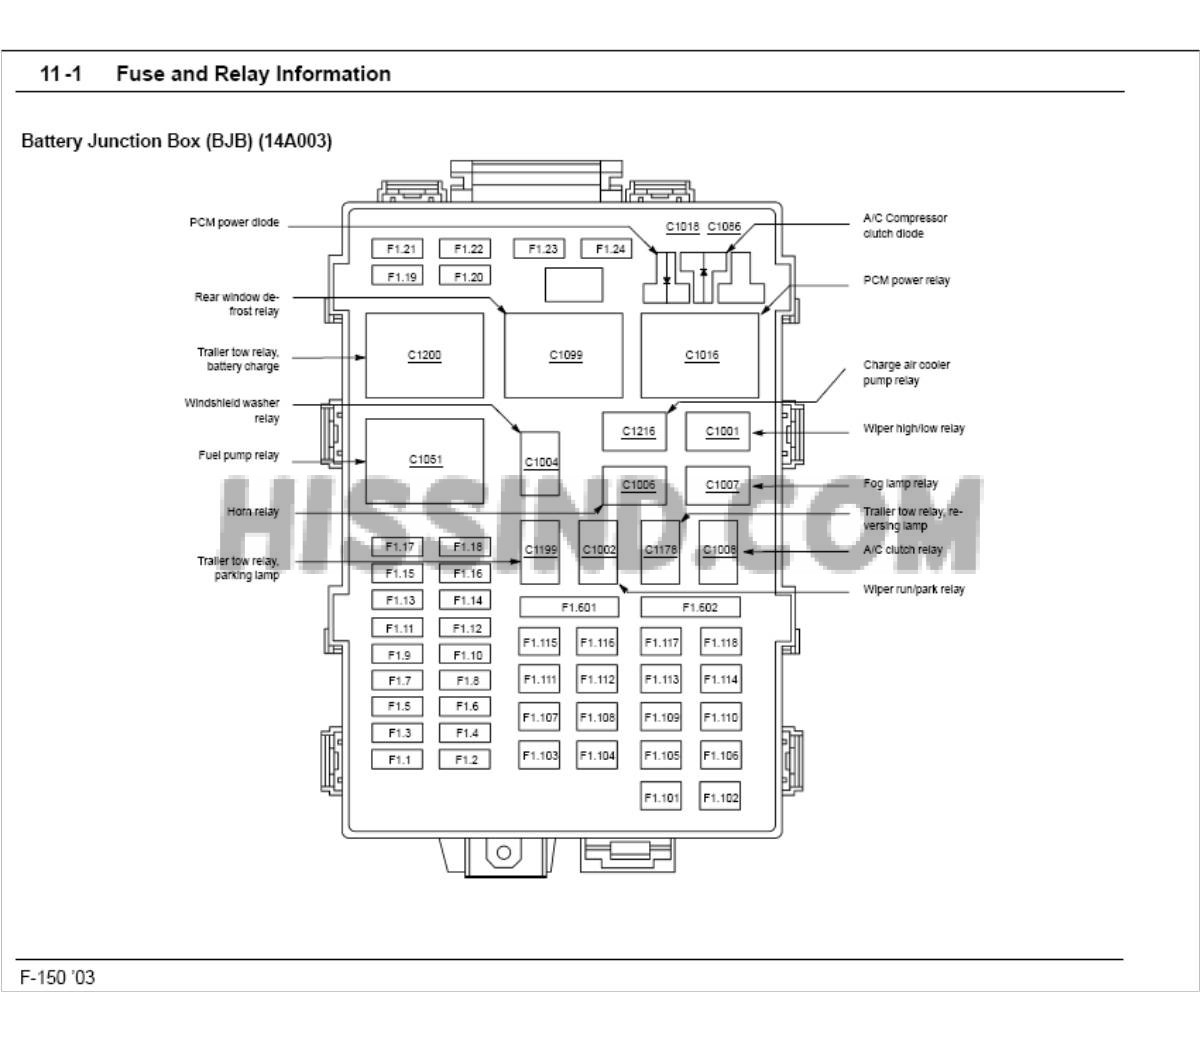 2007 F150 Fuse Box Diagram Electrical Schematics 2001 F 150 Supercrew 1997 Engine Wiring Diagrams U2022 Xl